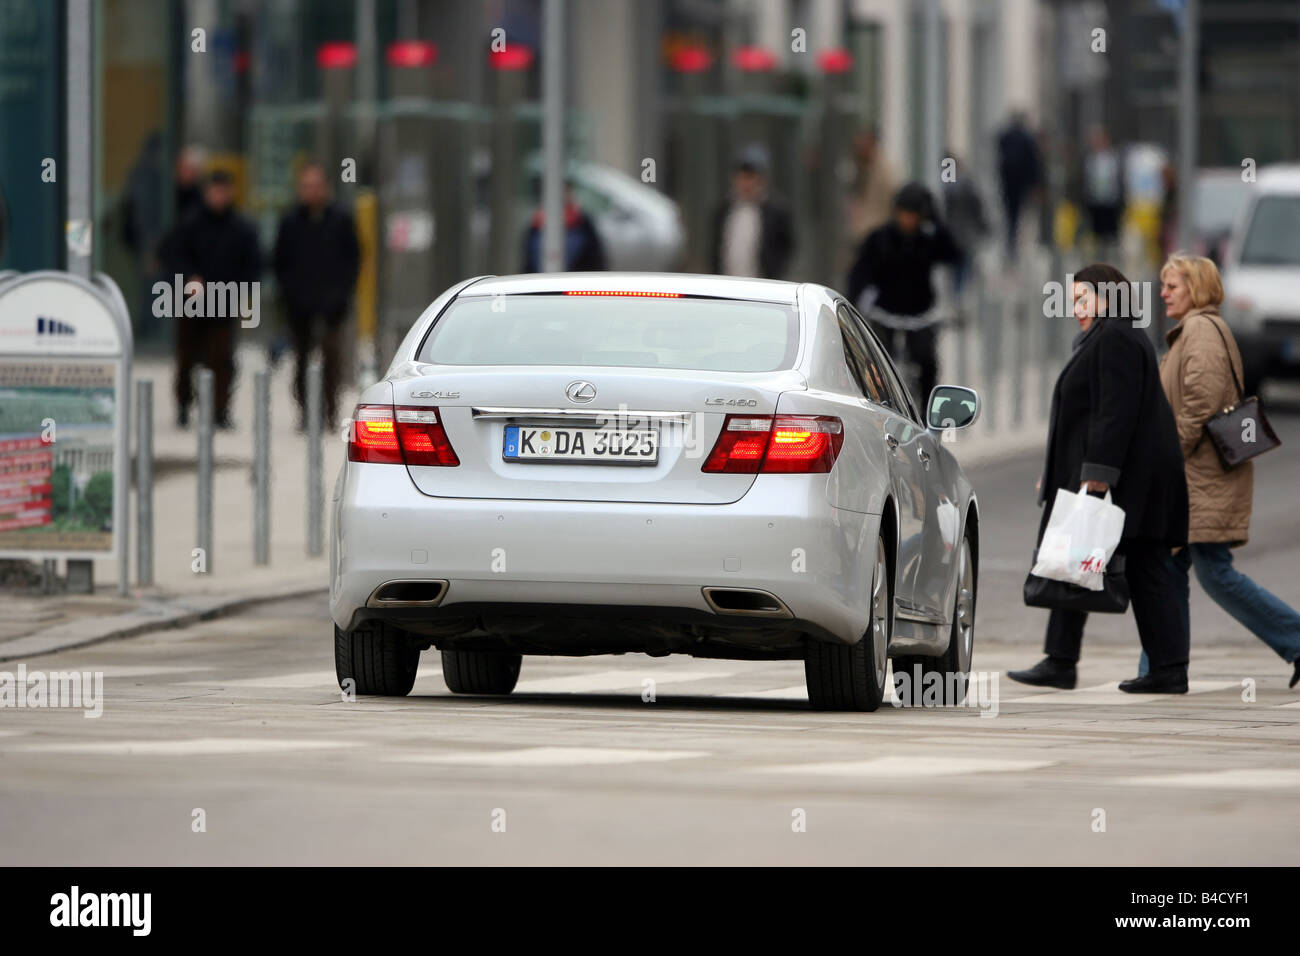 Lexus LS 460 Ambience Impression, model year 2007-, white, driving, diagonal from the back, rear view, City - Stock Image